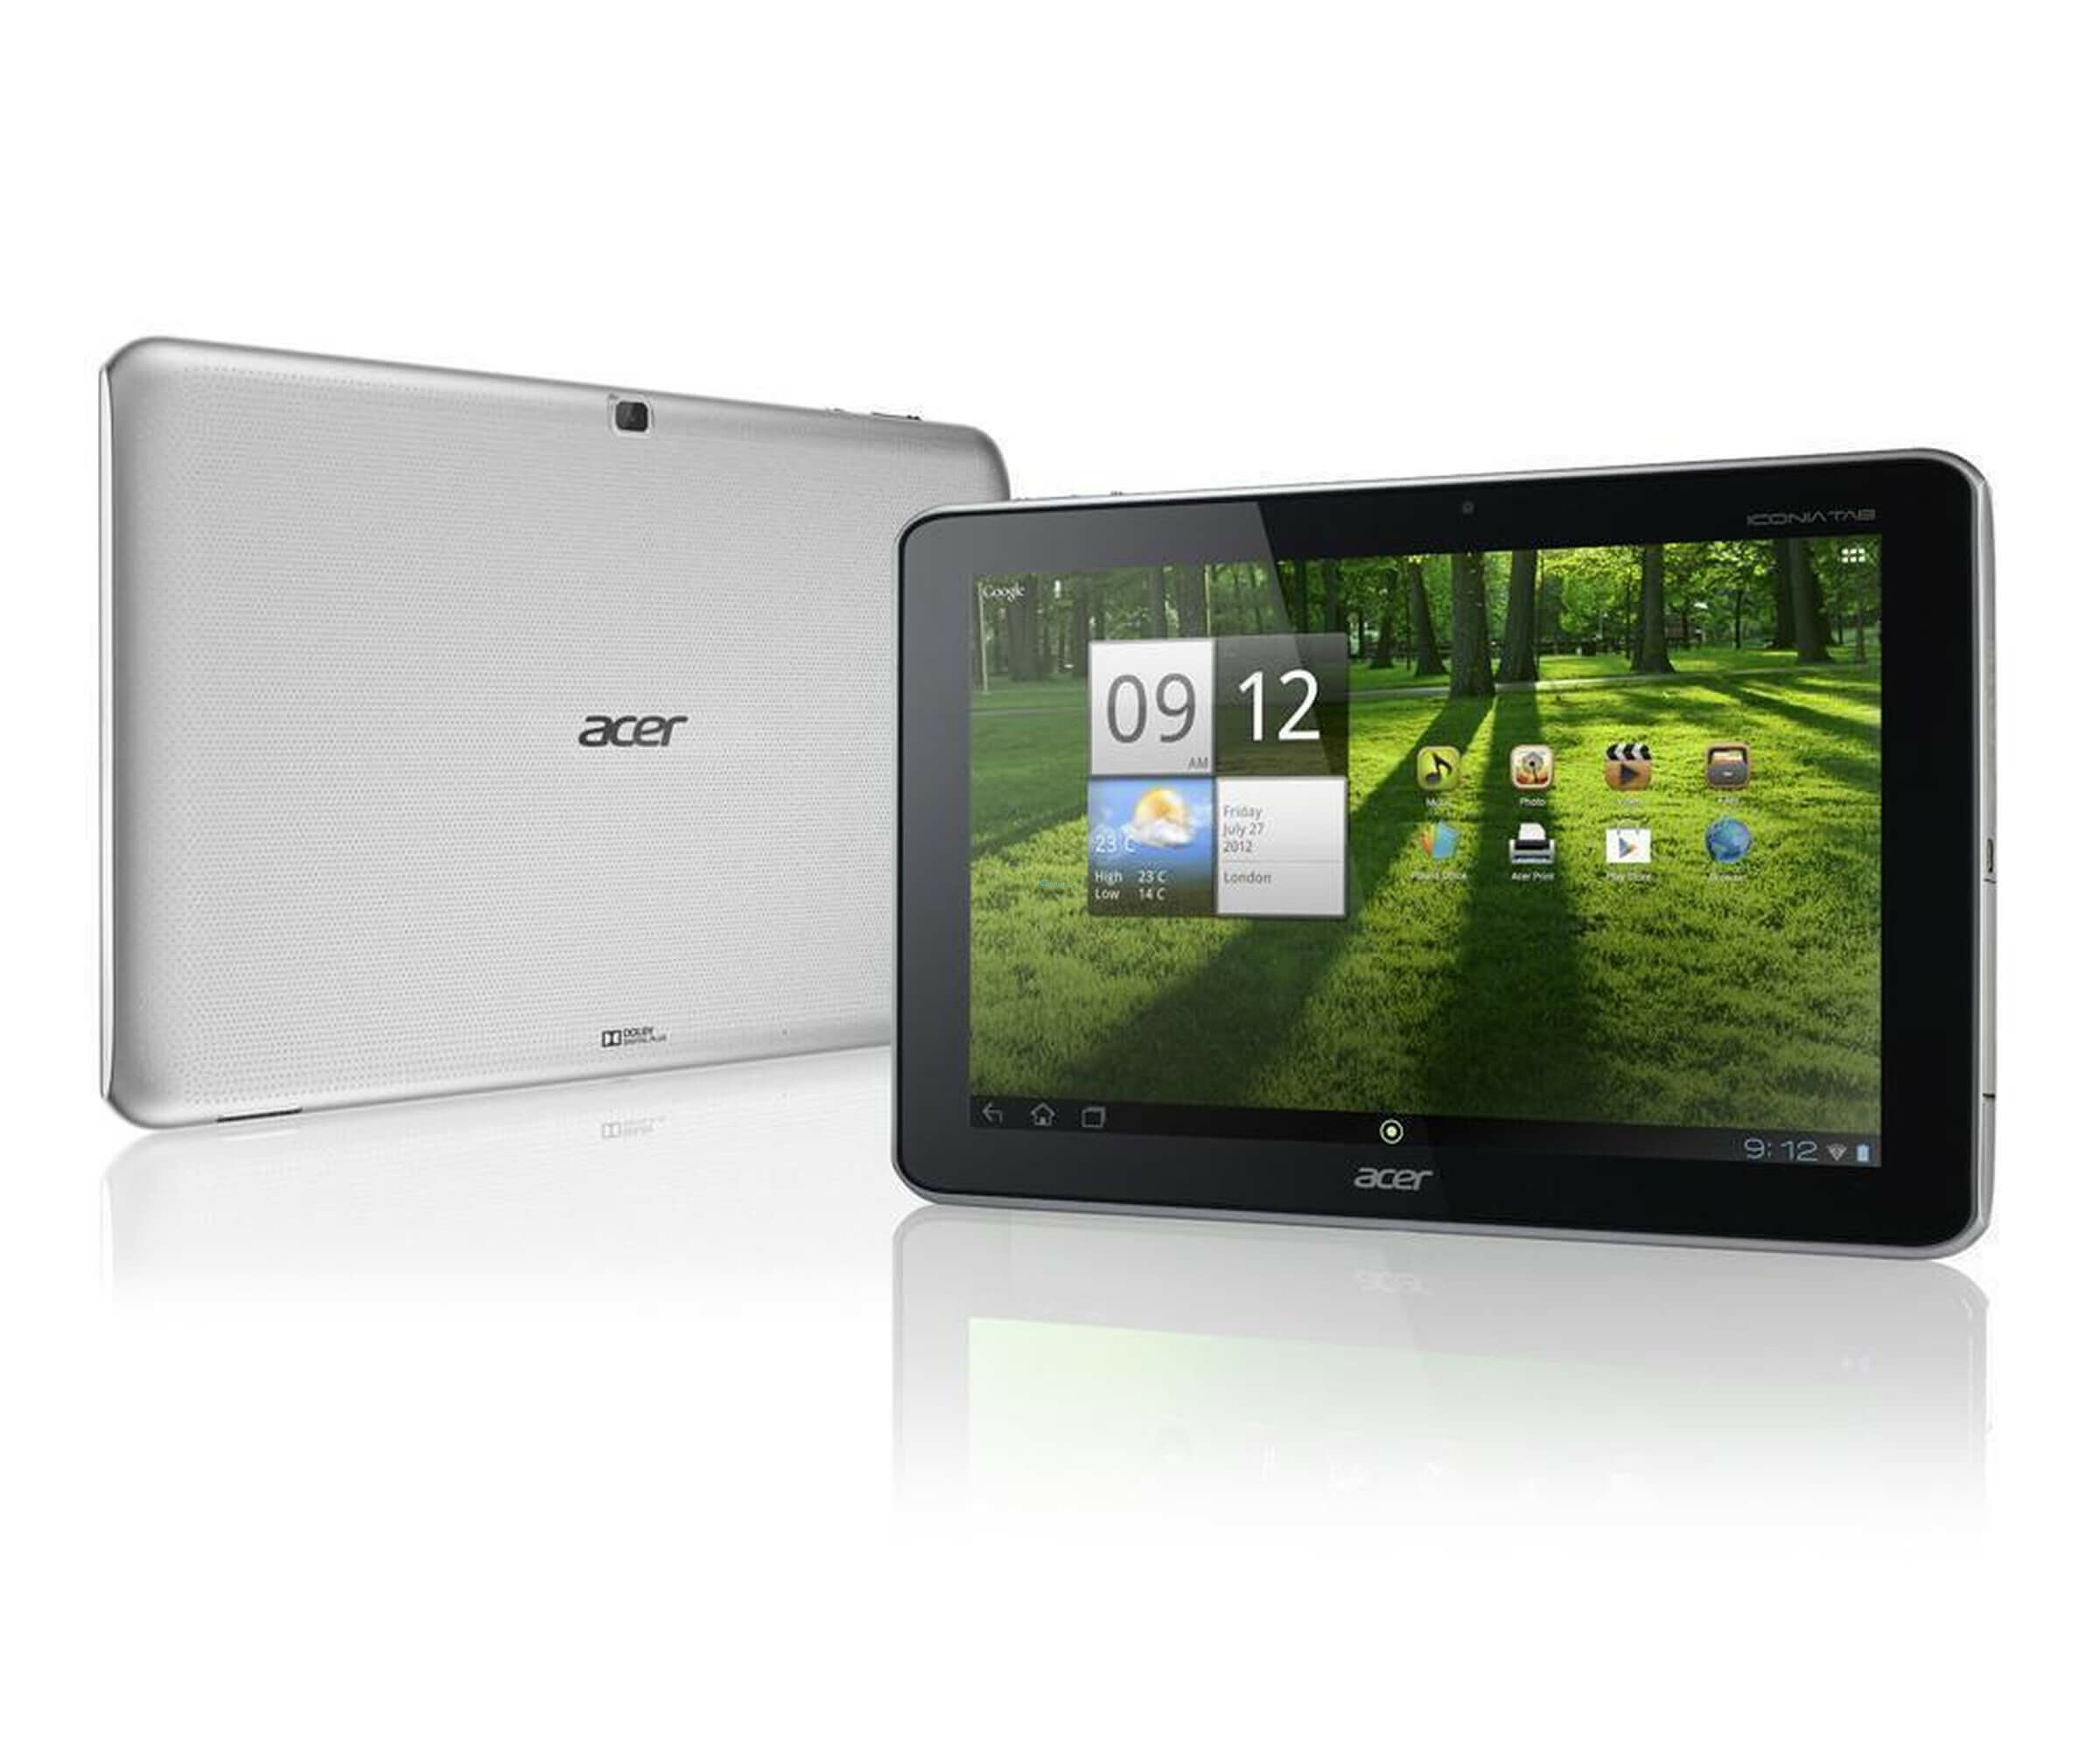 acer-iconia-tab-a700-tablet-android-4-1-1-32-gb-25-7-cm-10-1-tft-1920-x-1200-